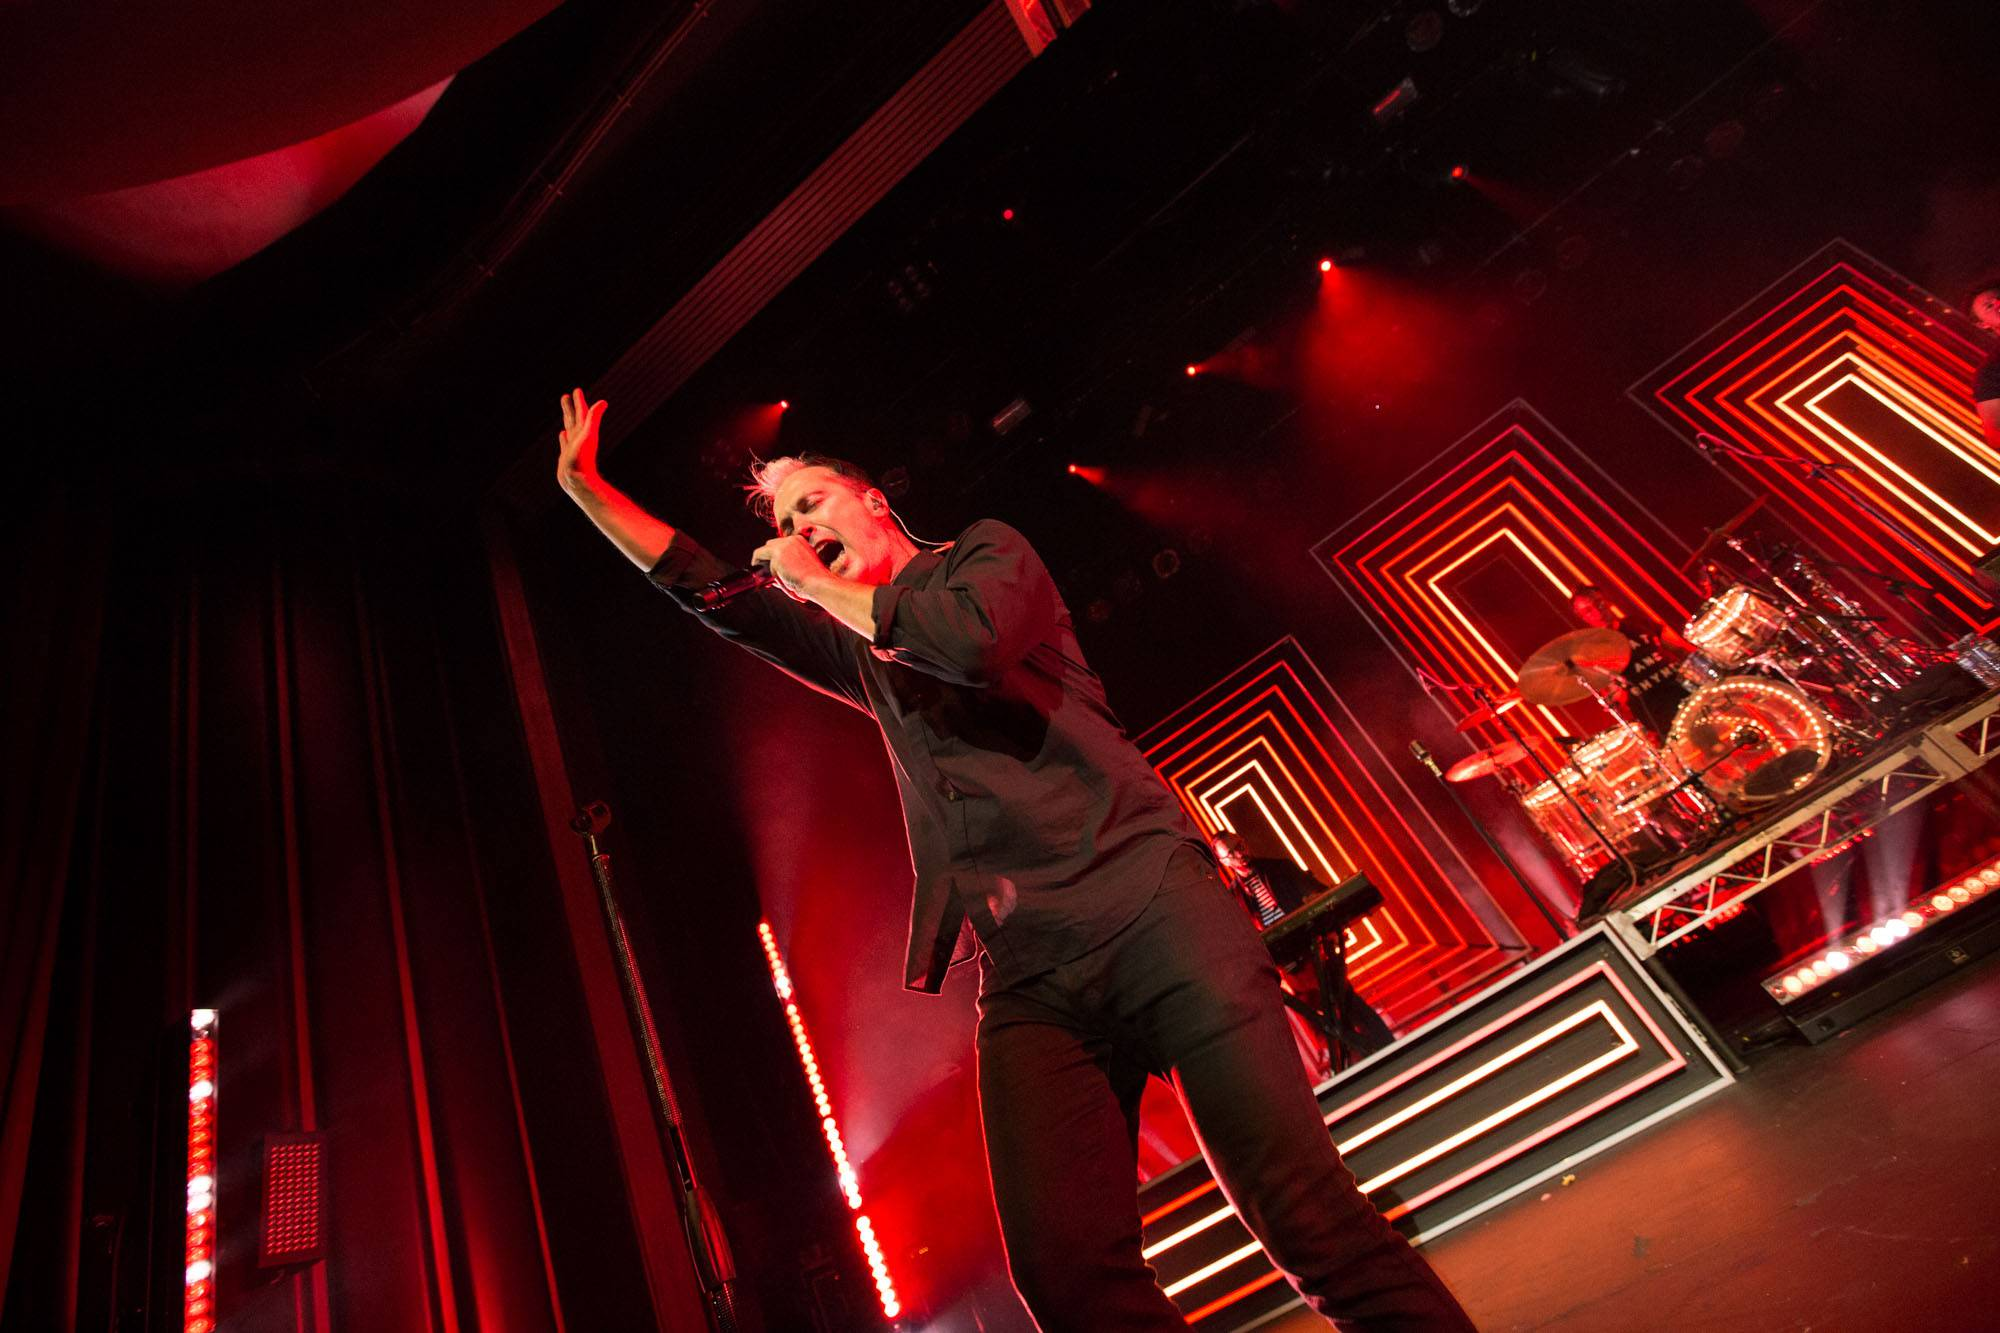 Fitz and the Tantrums at the Vogue Theatre, Vancouver, Aug. 24 2016. Kirk Chantraine photo.